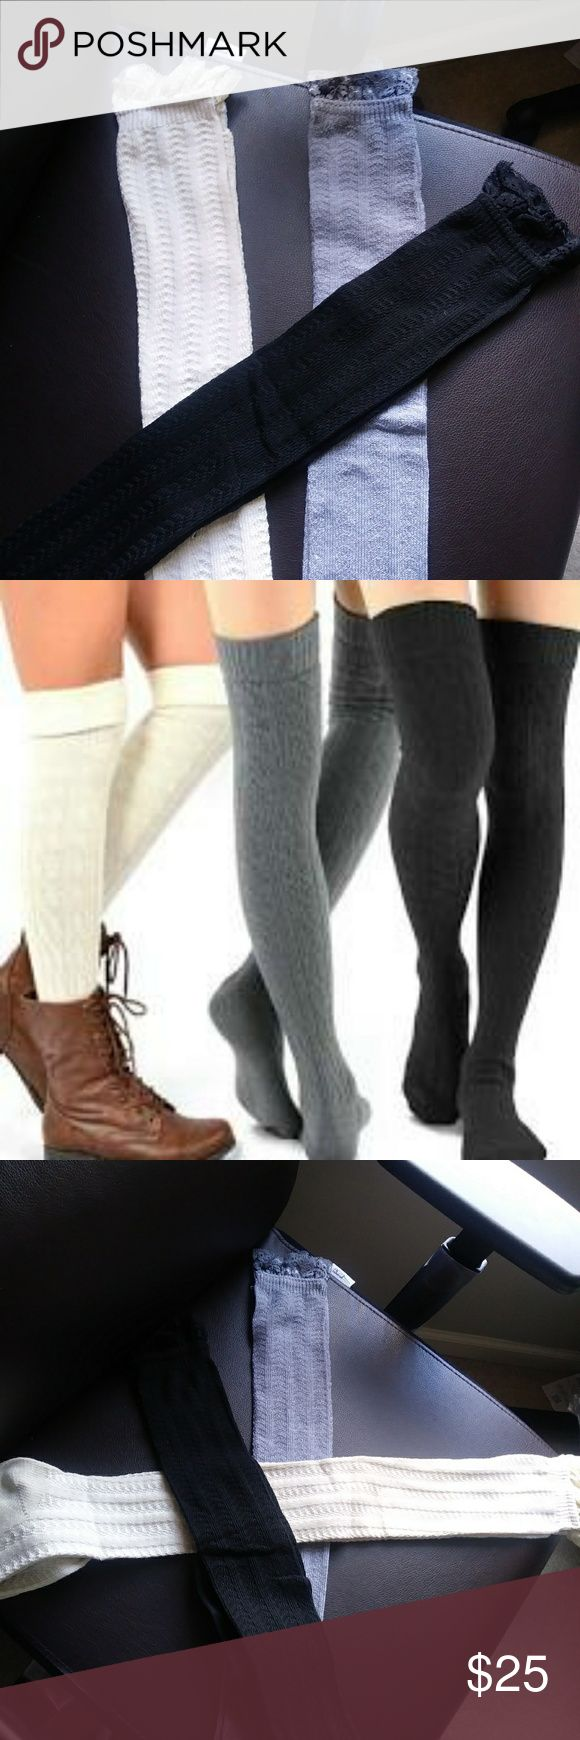 Over the Knee Boot Socks with lace Top New never wore just took out of bag to take pics 97% polyester 3 % spandex Size 9-11 Same colors in picture All three as a set not sold separately Accessories Hosiery & Socks